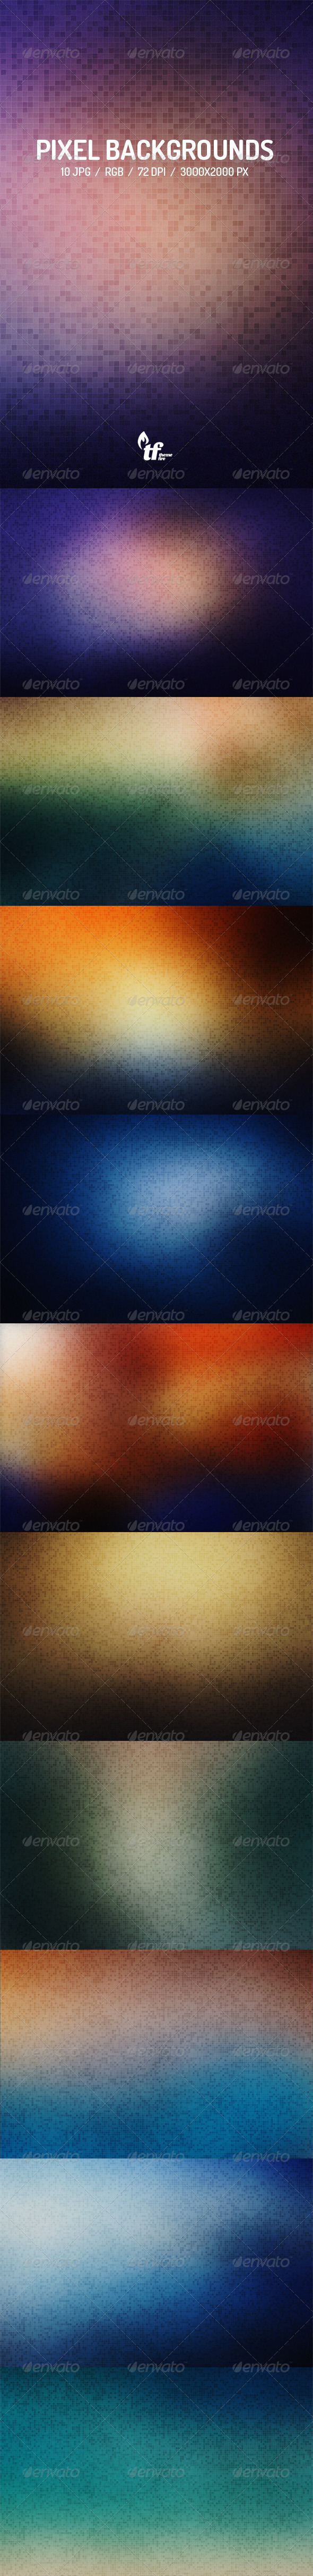 GraphicRiver Pixel Backgrounds 7521864